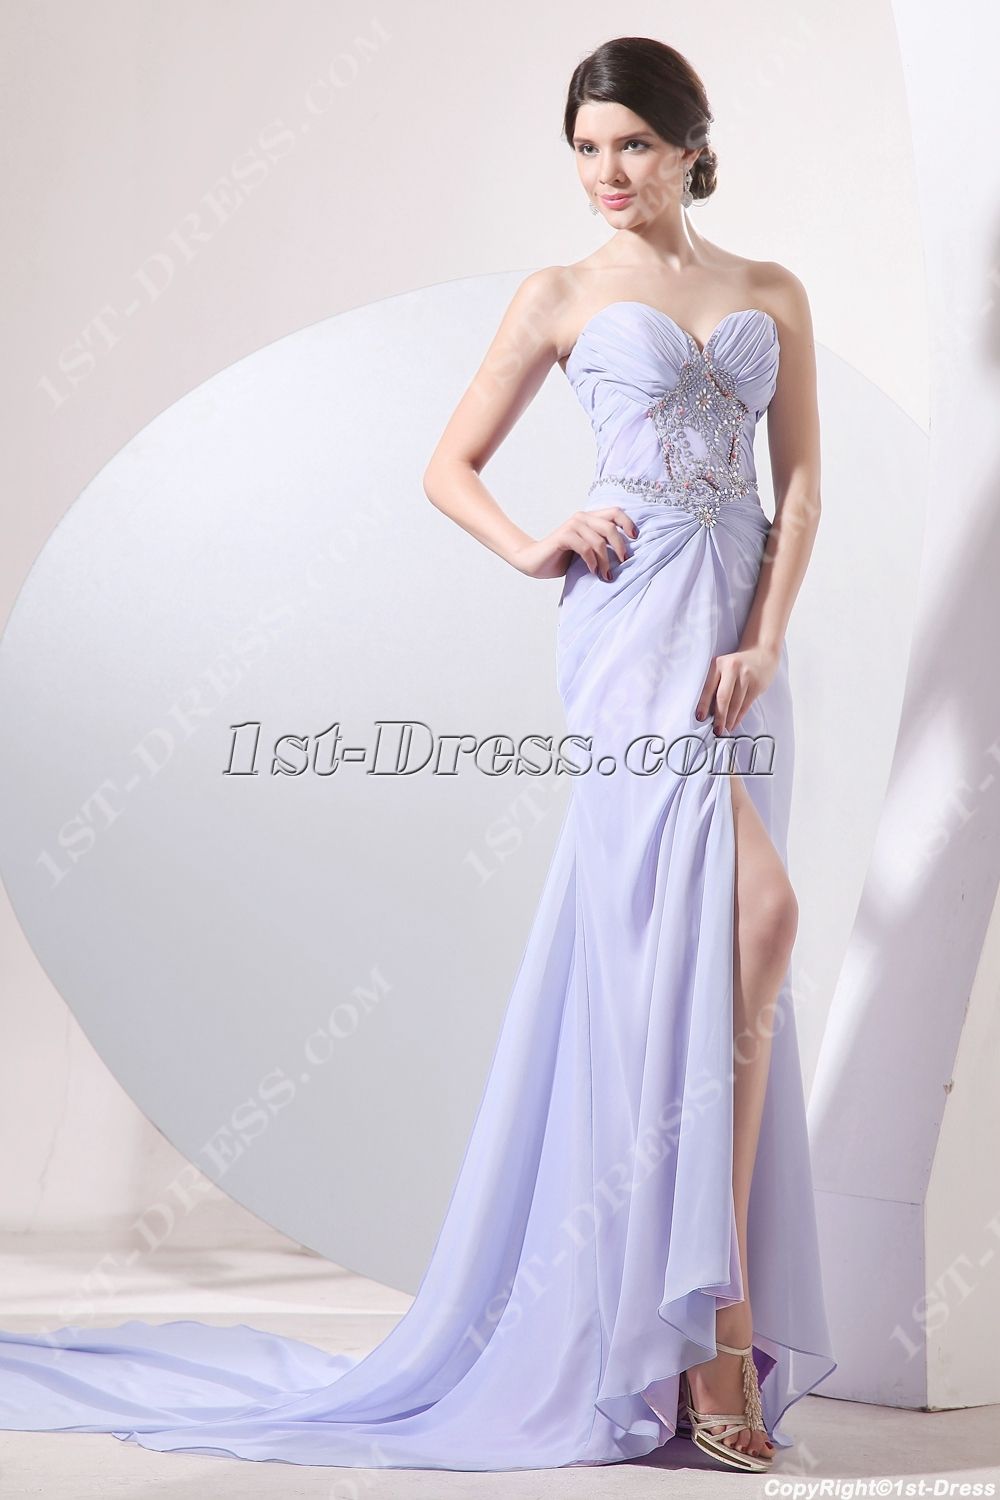 images/201311/big/Sweetheart-Lavender-2014-Evening-Dress-with-Detachable-Train-3532-b-1-1384444578.jpg